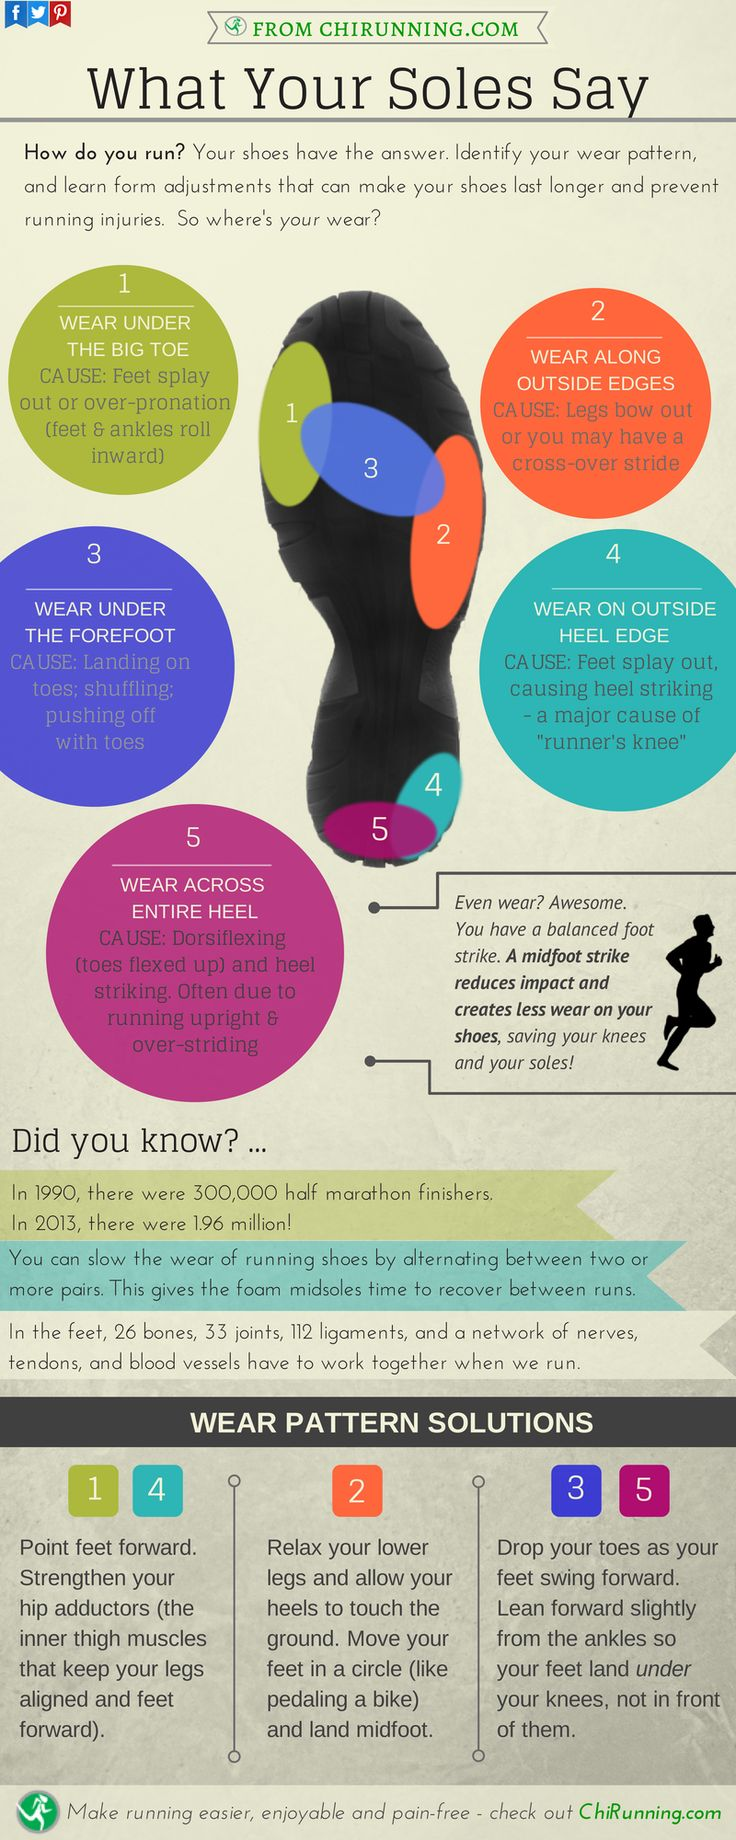 Learn why certain part of the soles of your shoes get worn out more quickly than others! #shoesole #running